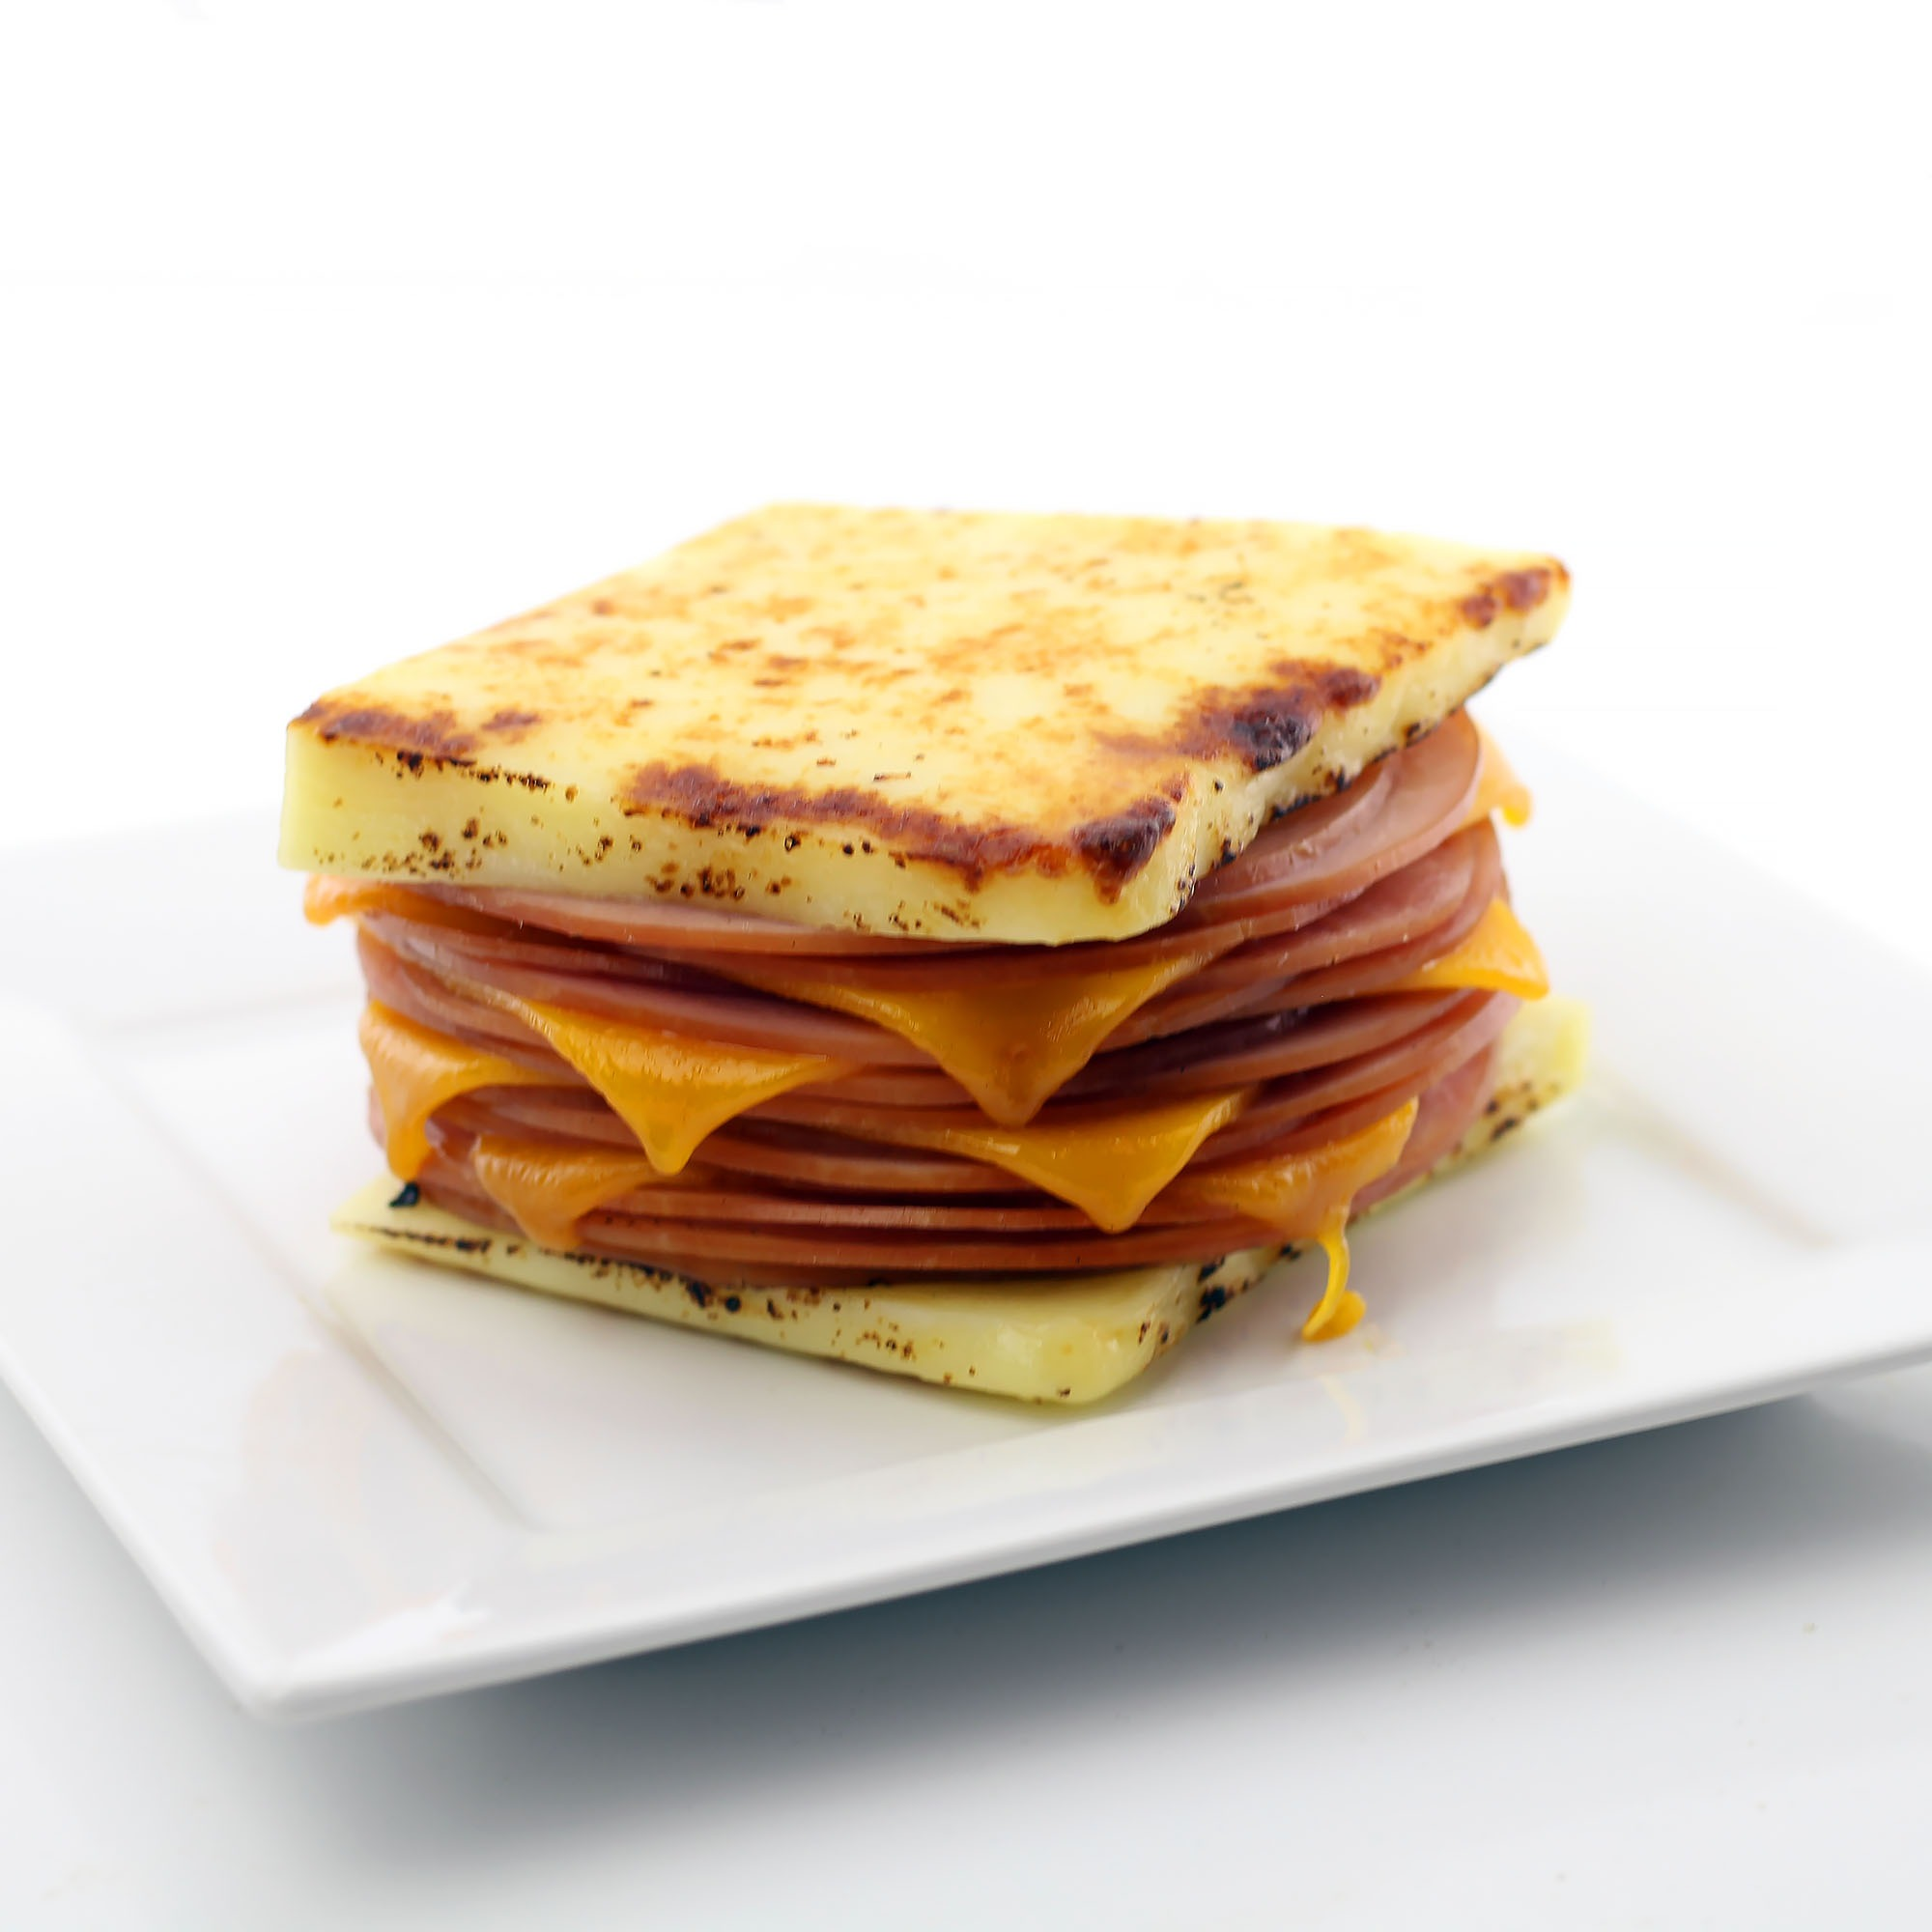 The Bread Cheese Hot Ham and Cheese Sandwich